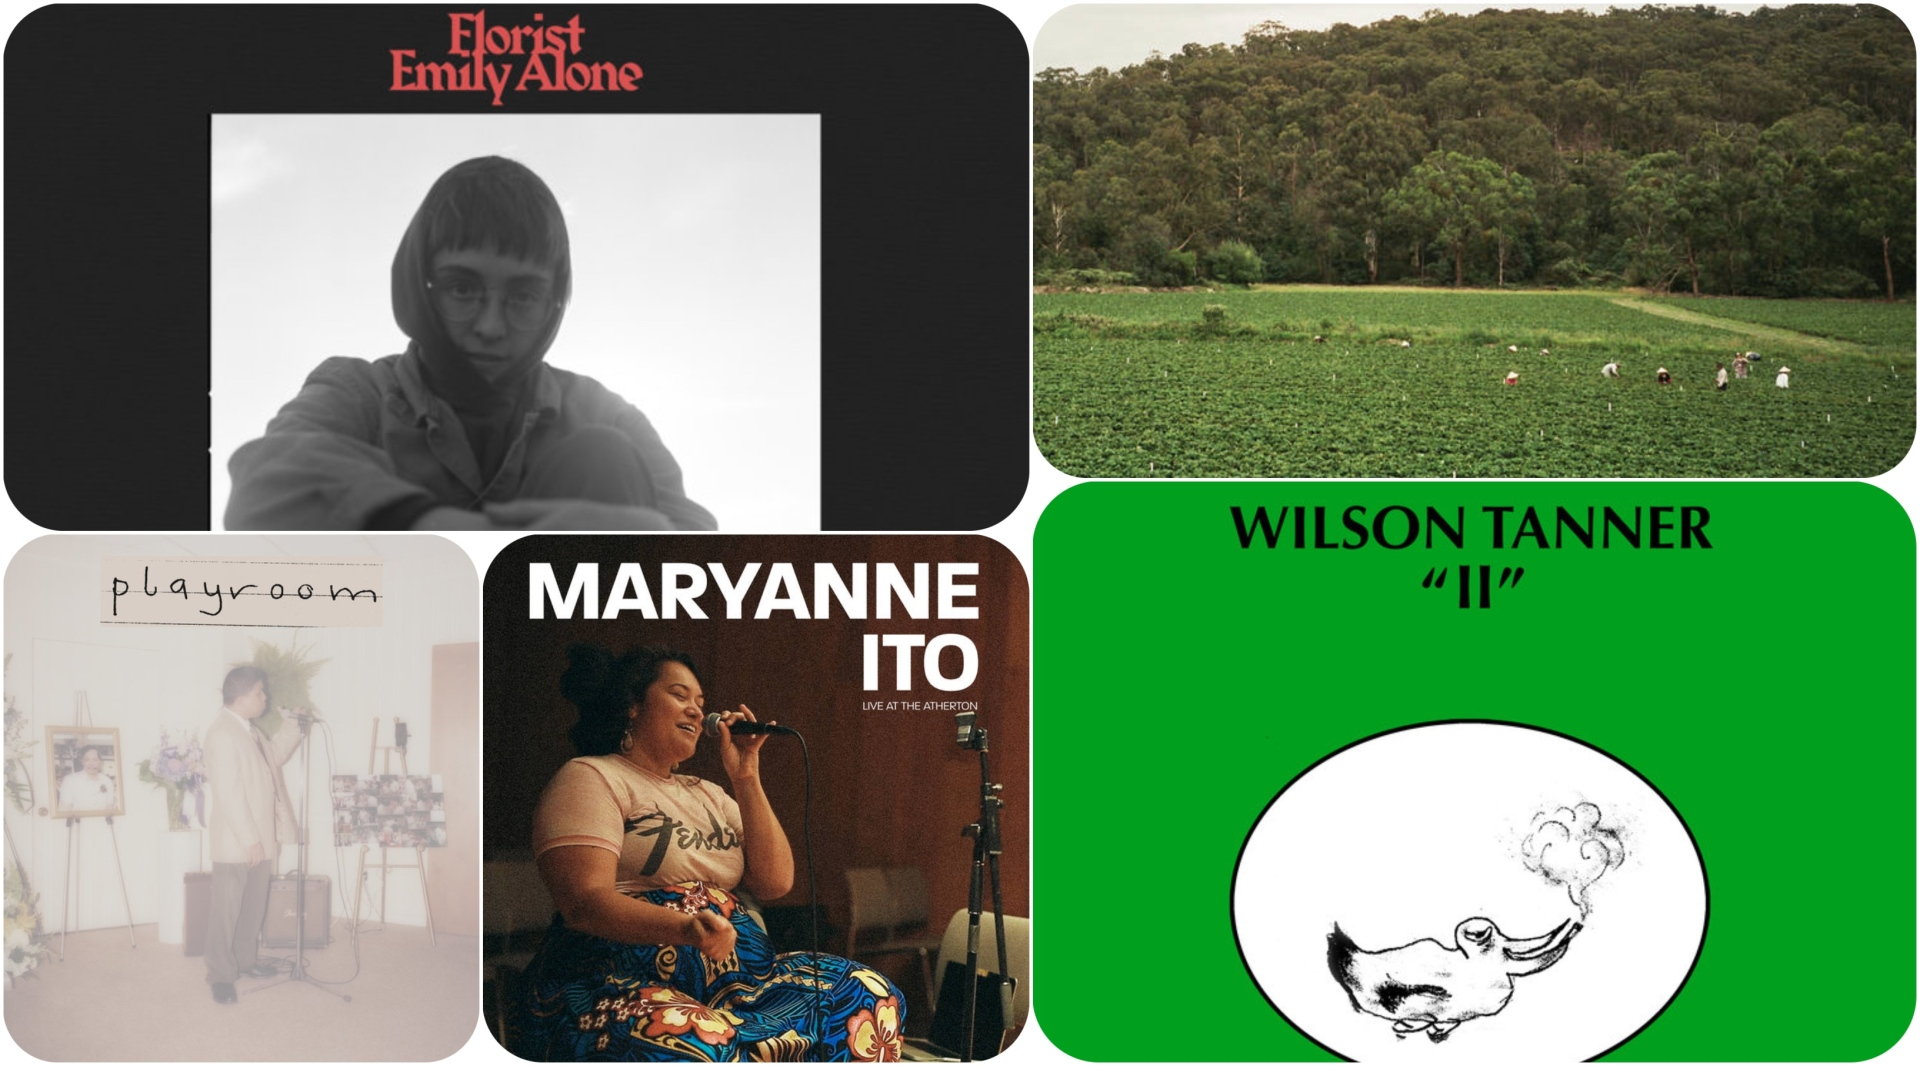 Stream music from Wilson Tanner, Albrecht La'Brooy, Florist, Maryanne Ito and Nathan Bajar.